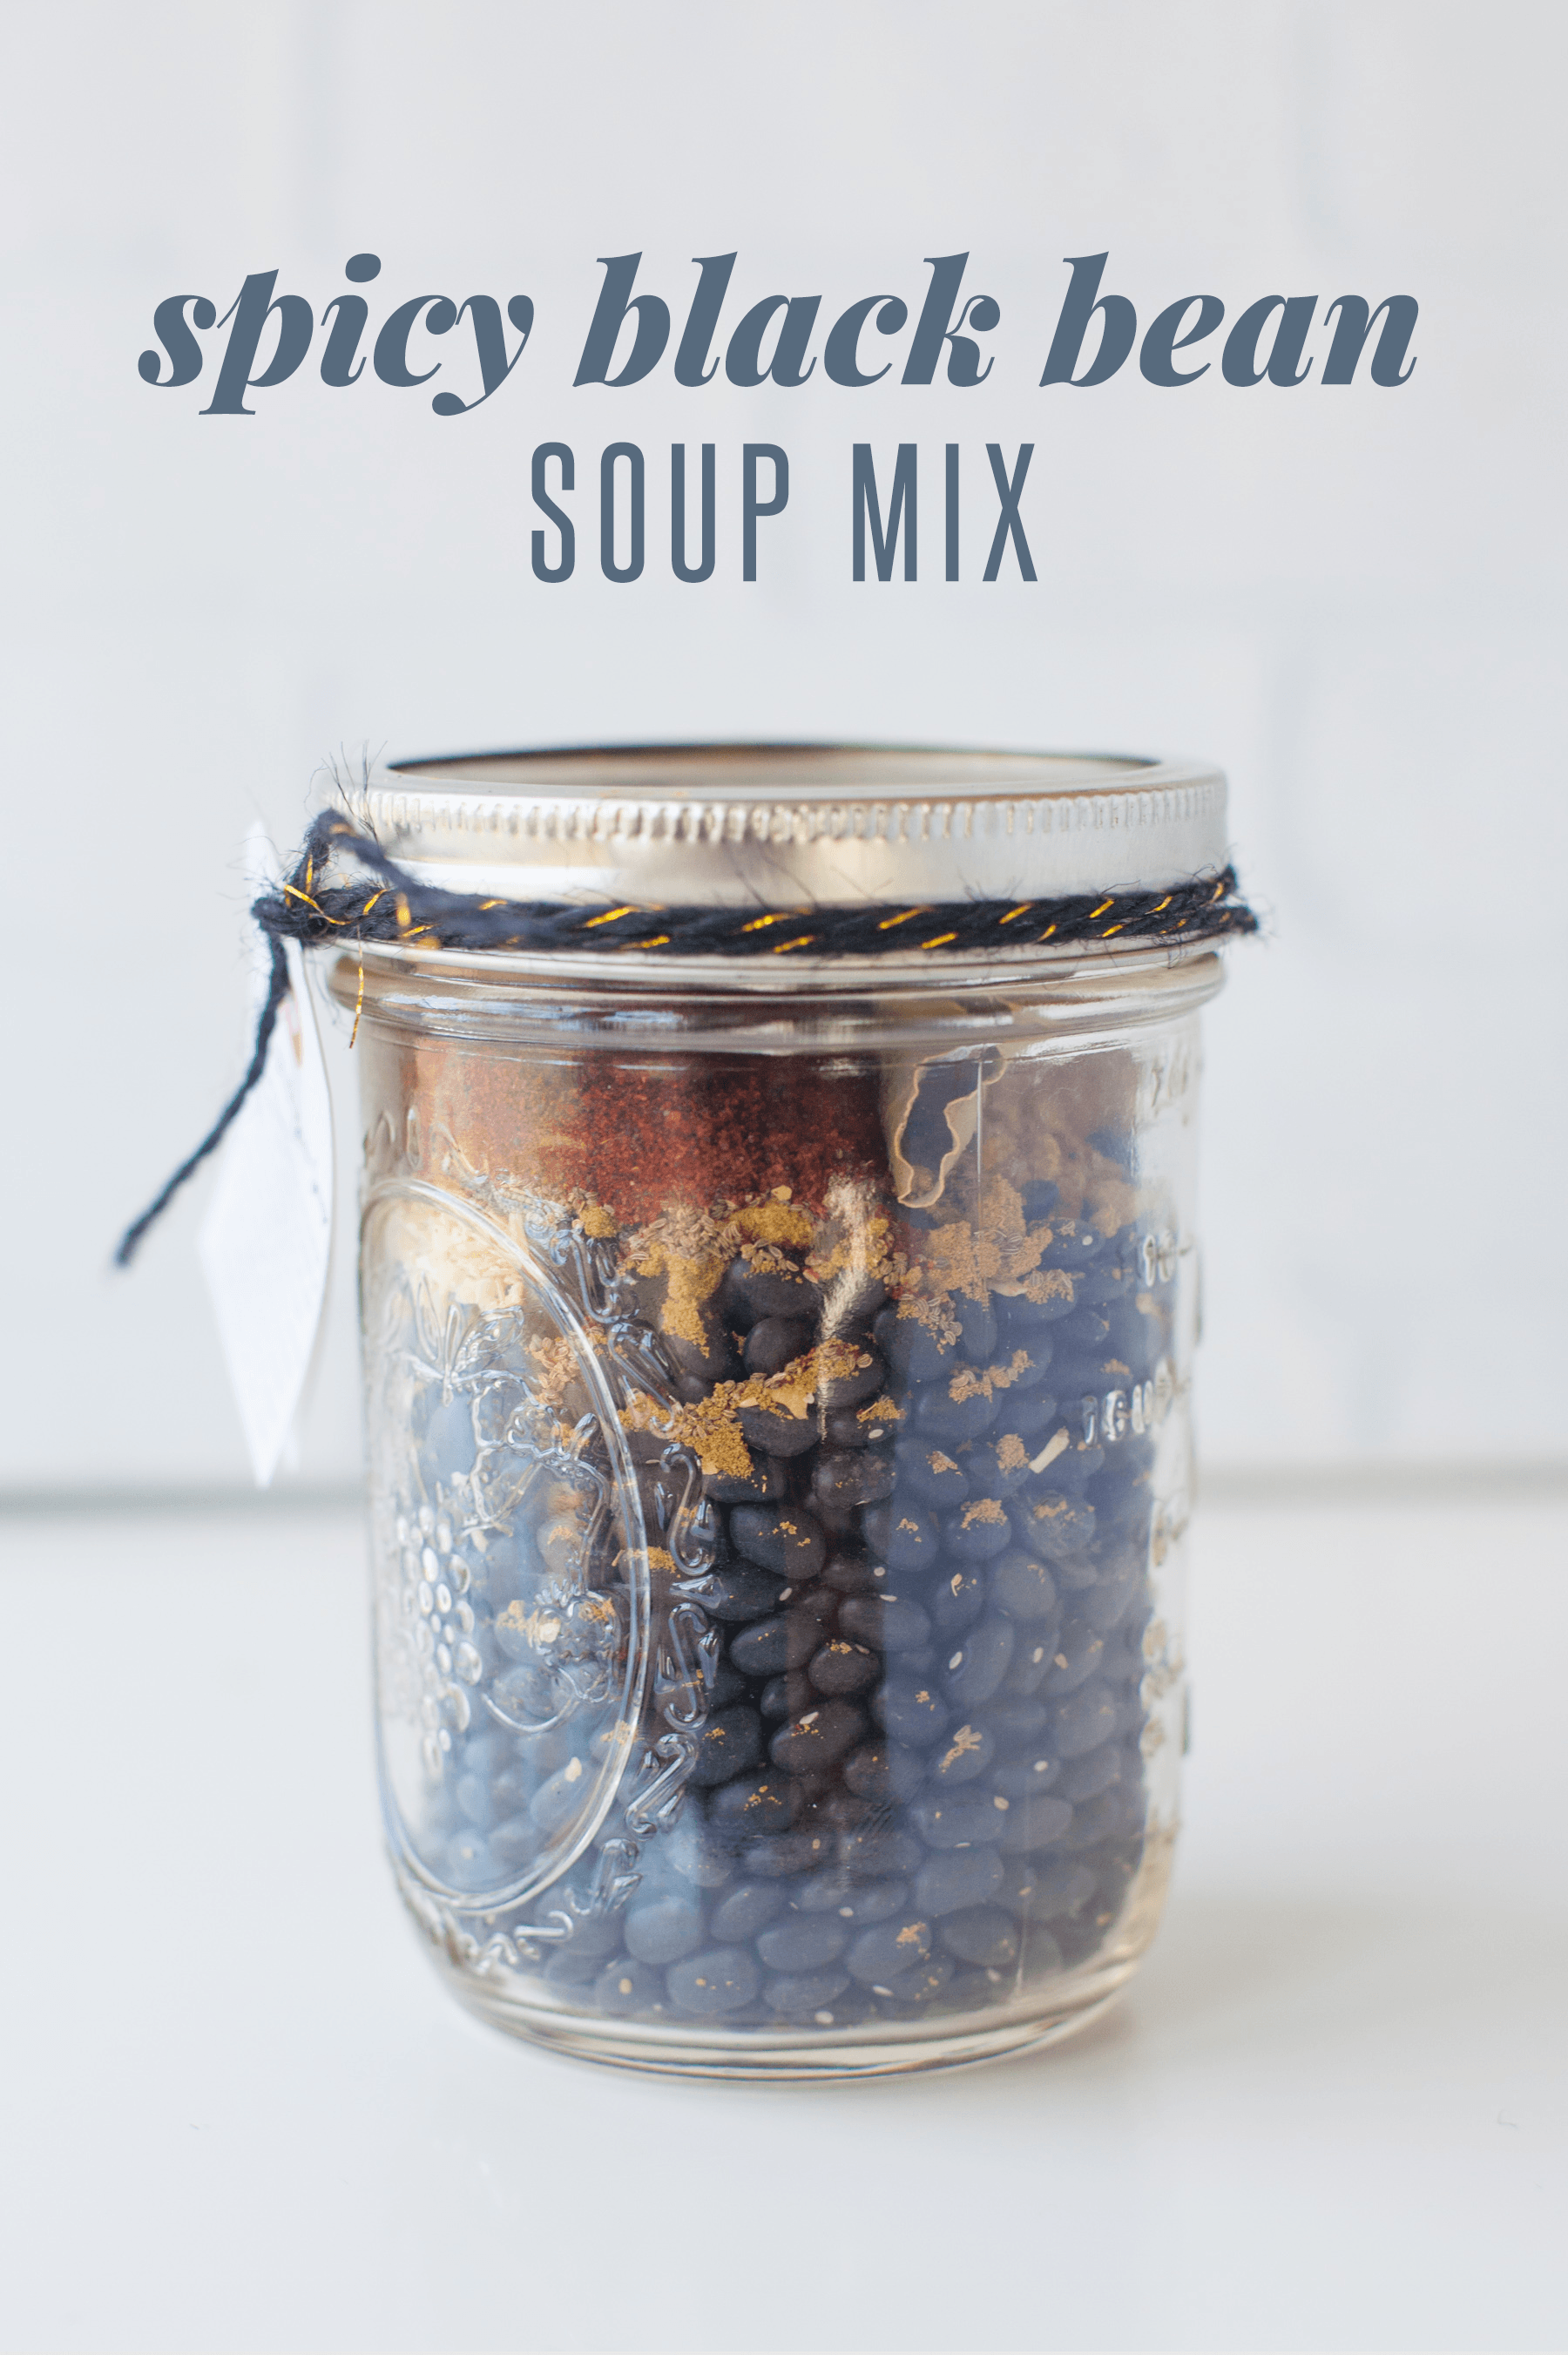 Spicy Black Bean Soup Mix